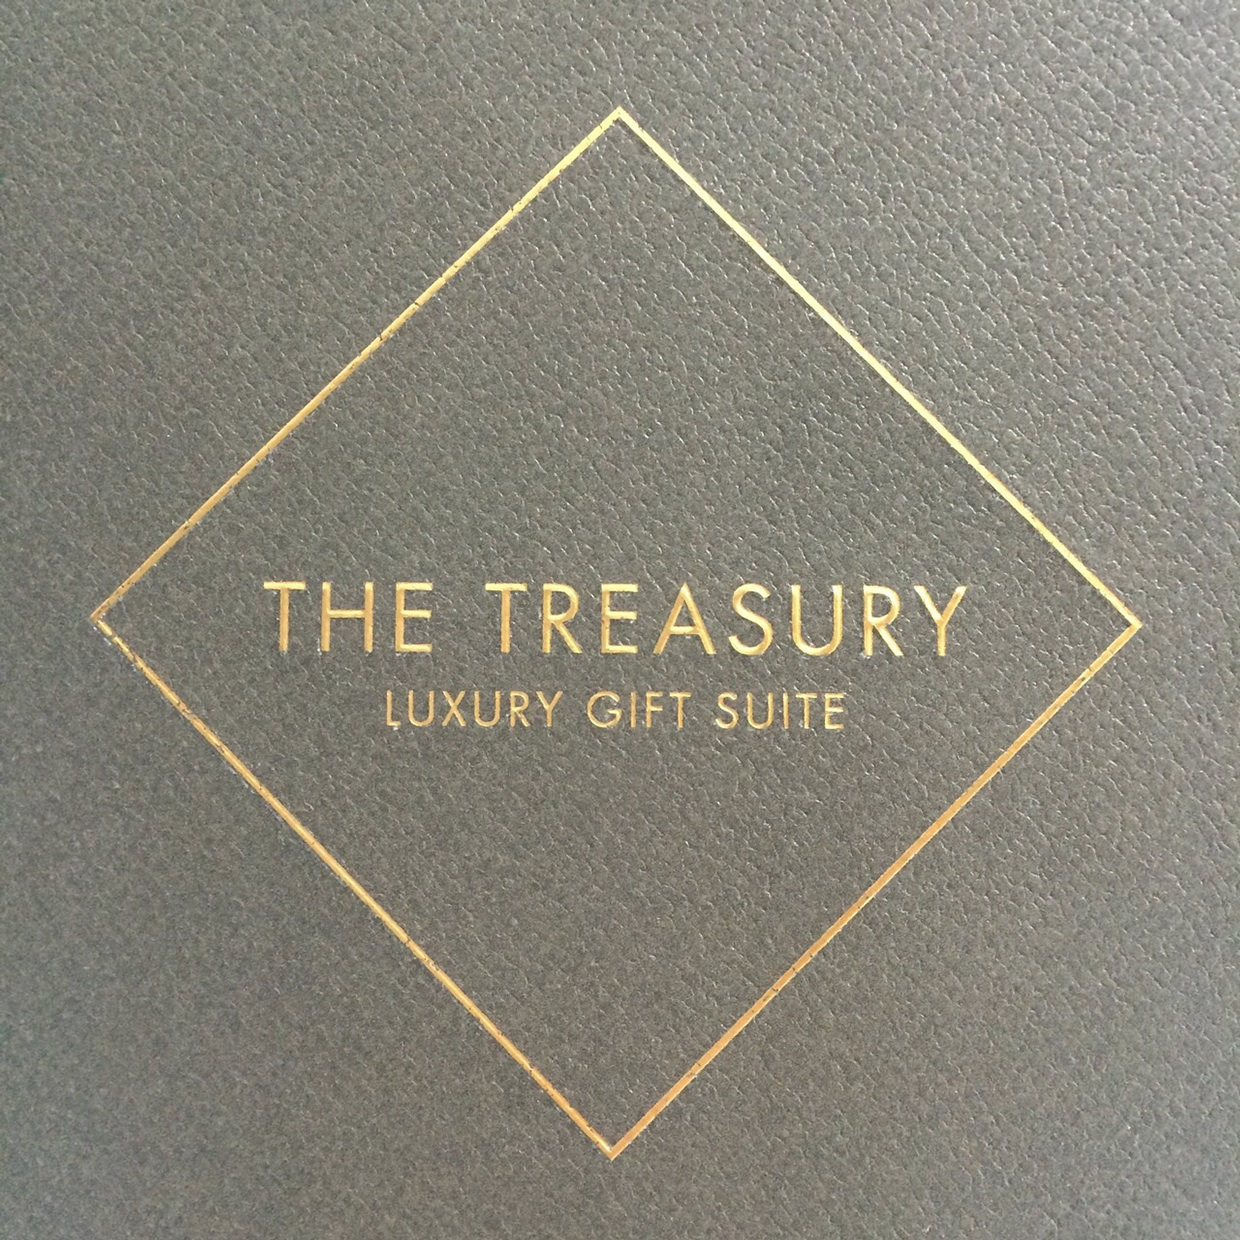 The Treasury Pop-Up Boutique